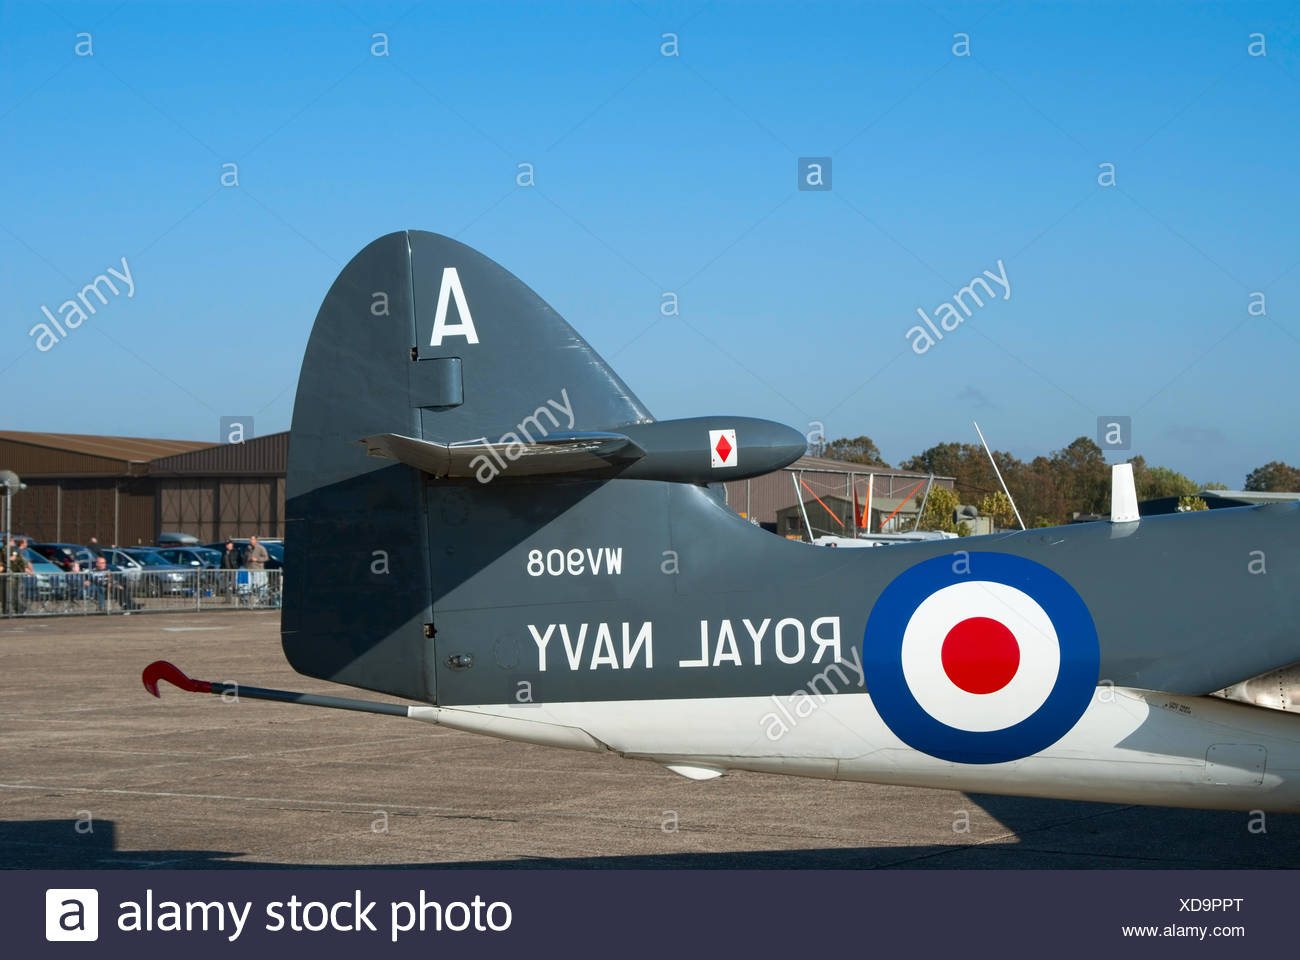 Tail of the Hawker Sea Hawk jet - Stock Image